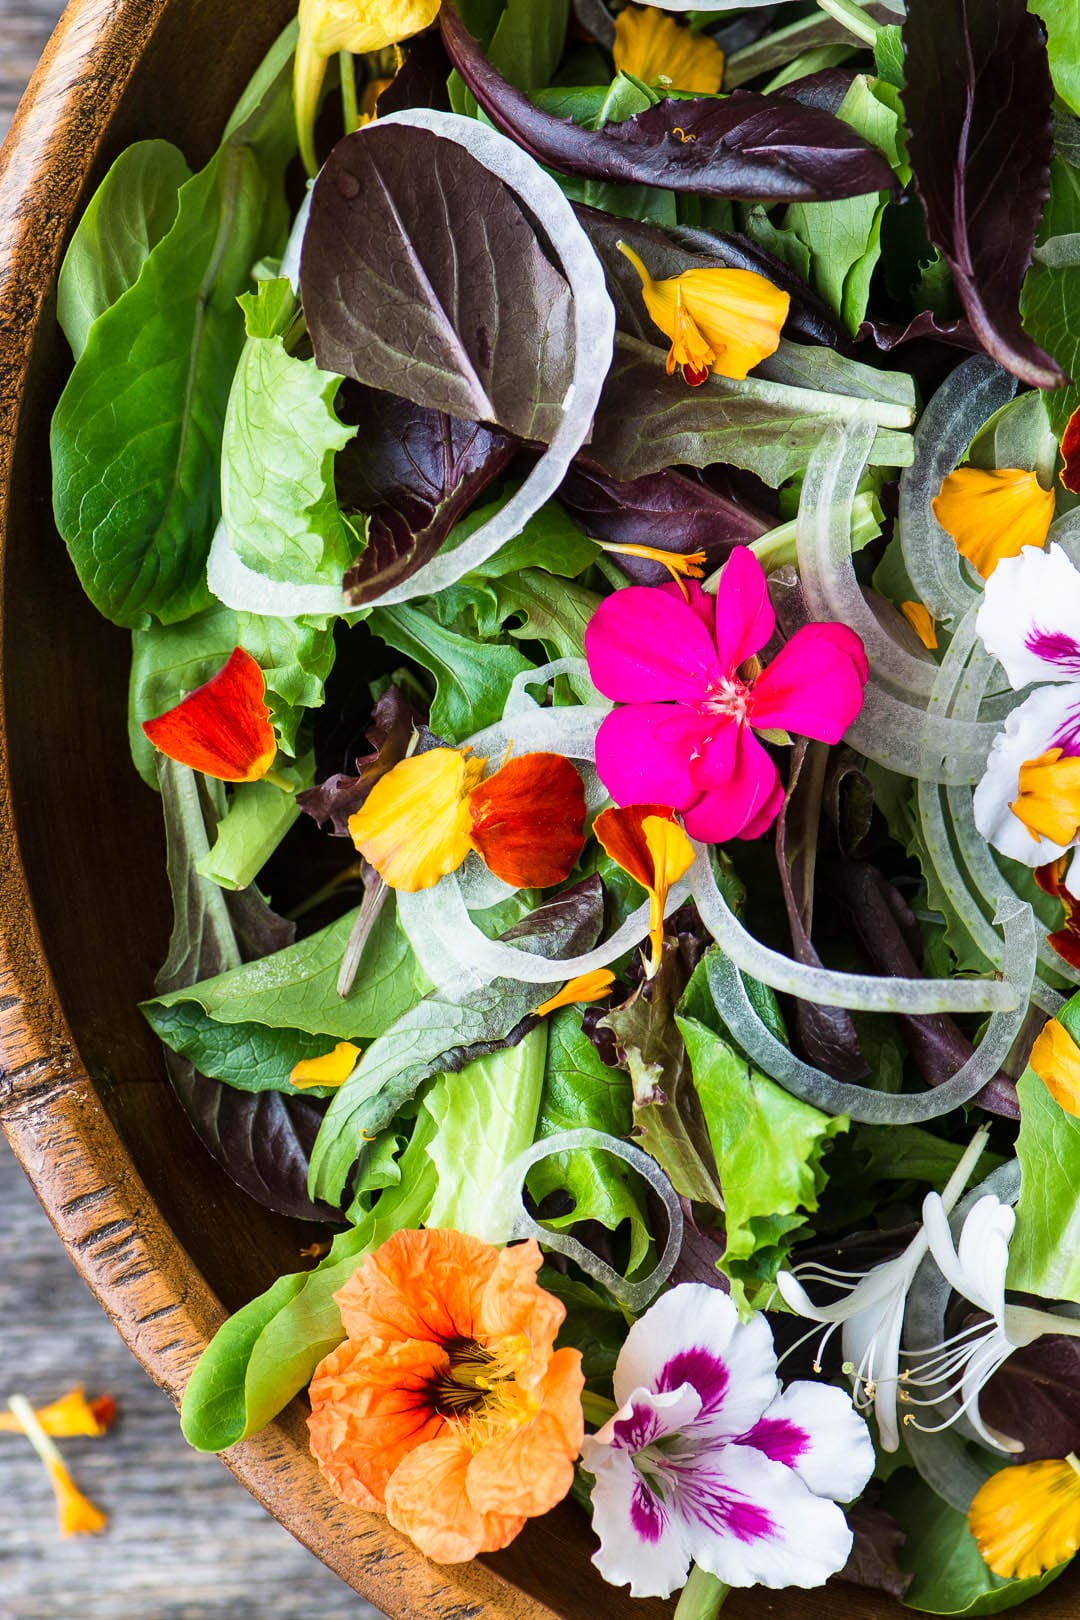 Spring Salad with Edible Flowers ~ perfect for any spring occasion like weddings, showers, Easter, or Passover.